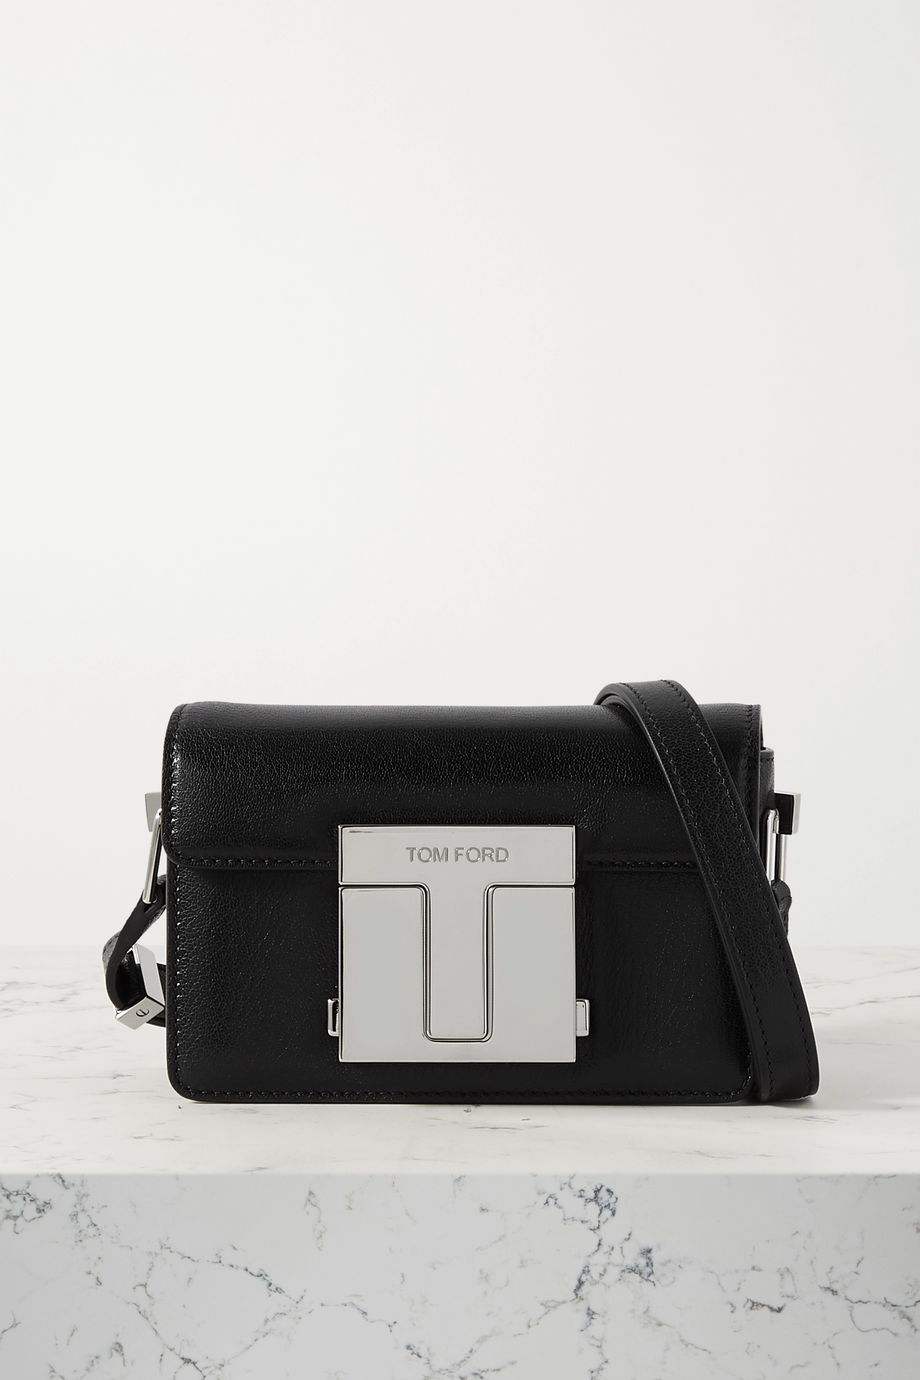 TOM FORD 001 small leather shoulder bag